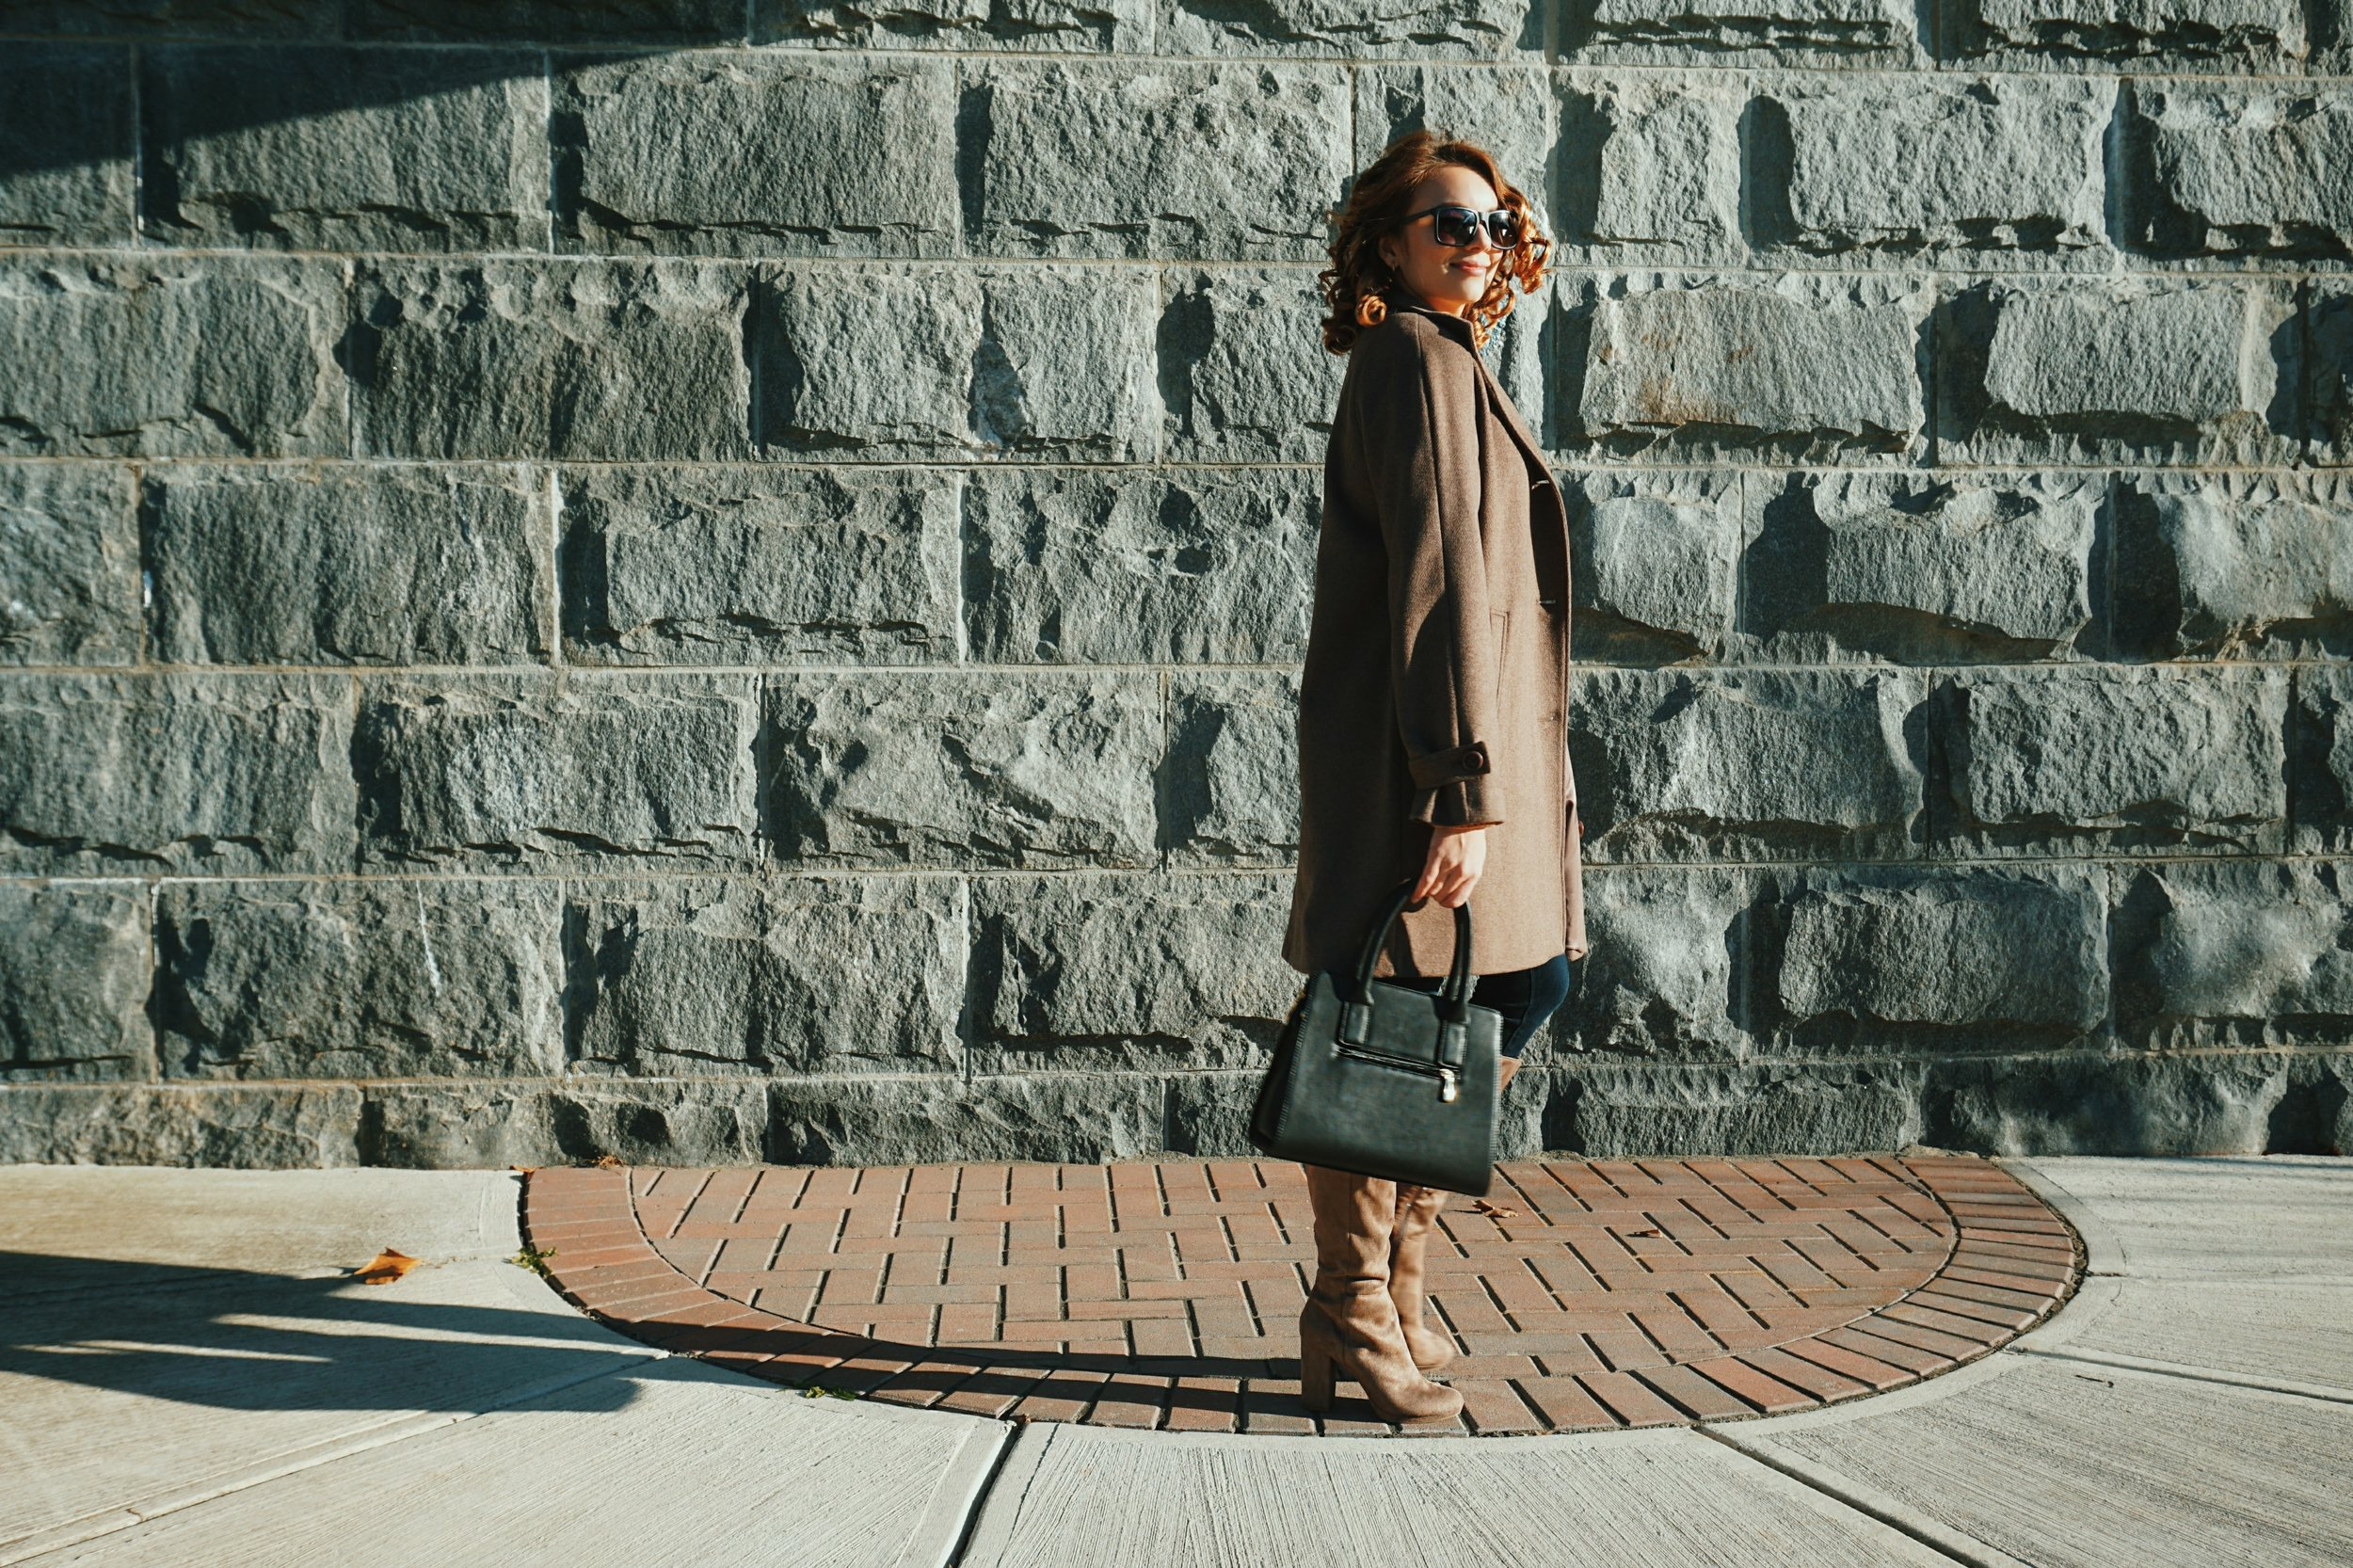 A fashion blogger standing near a stone wall, wearing a brown autumn coat, brown boots, and a black bag.